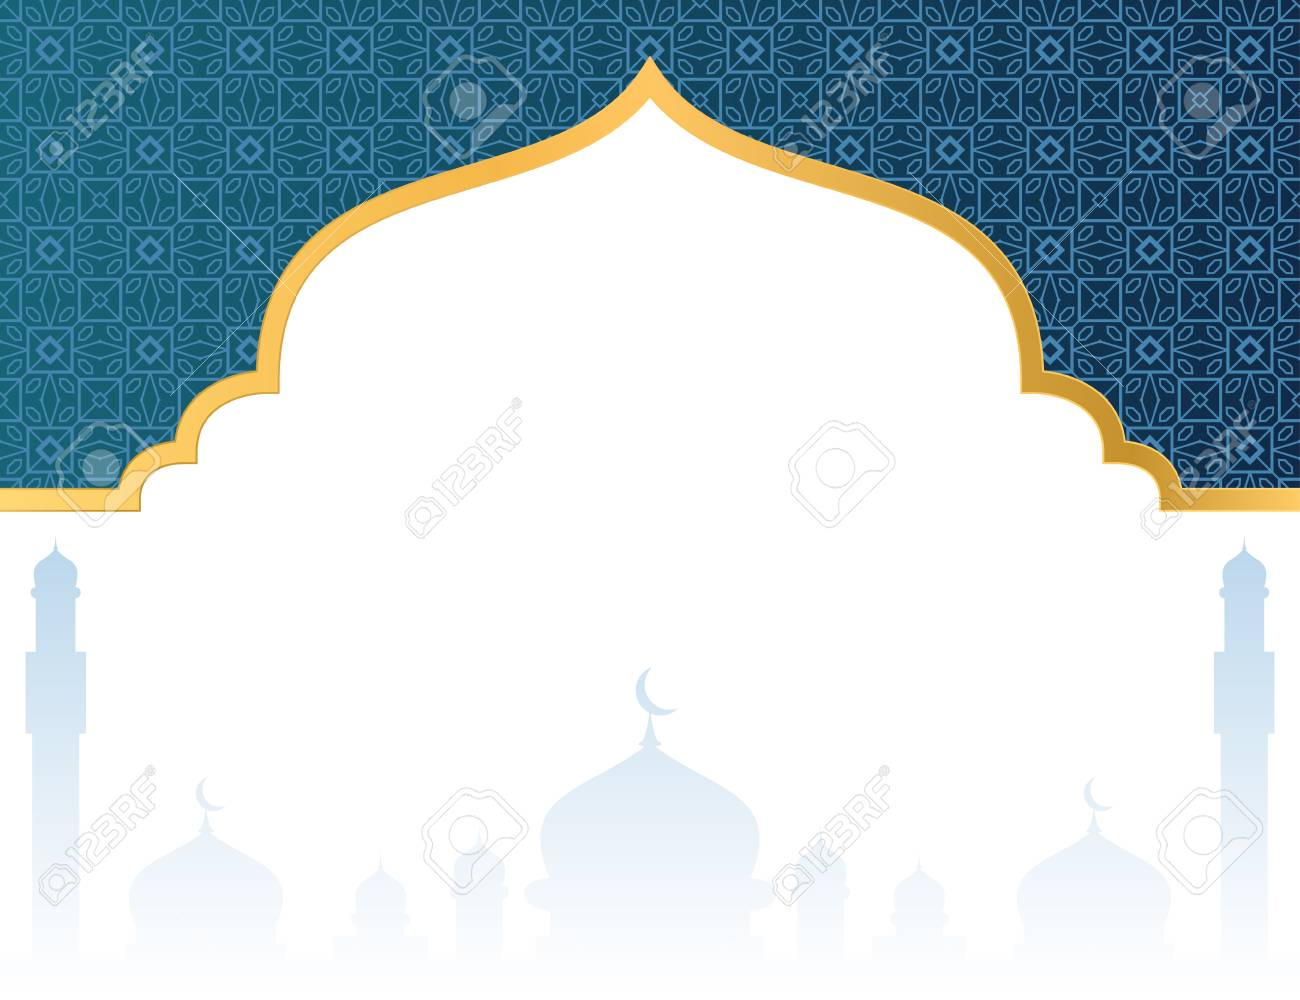 Blank Islamic Background With Mosque Roy #746657.